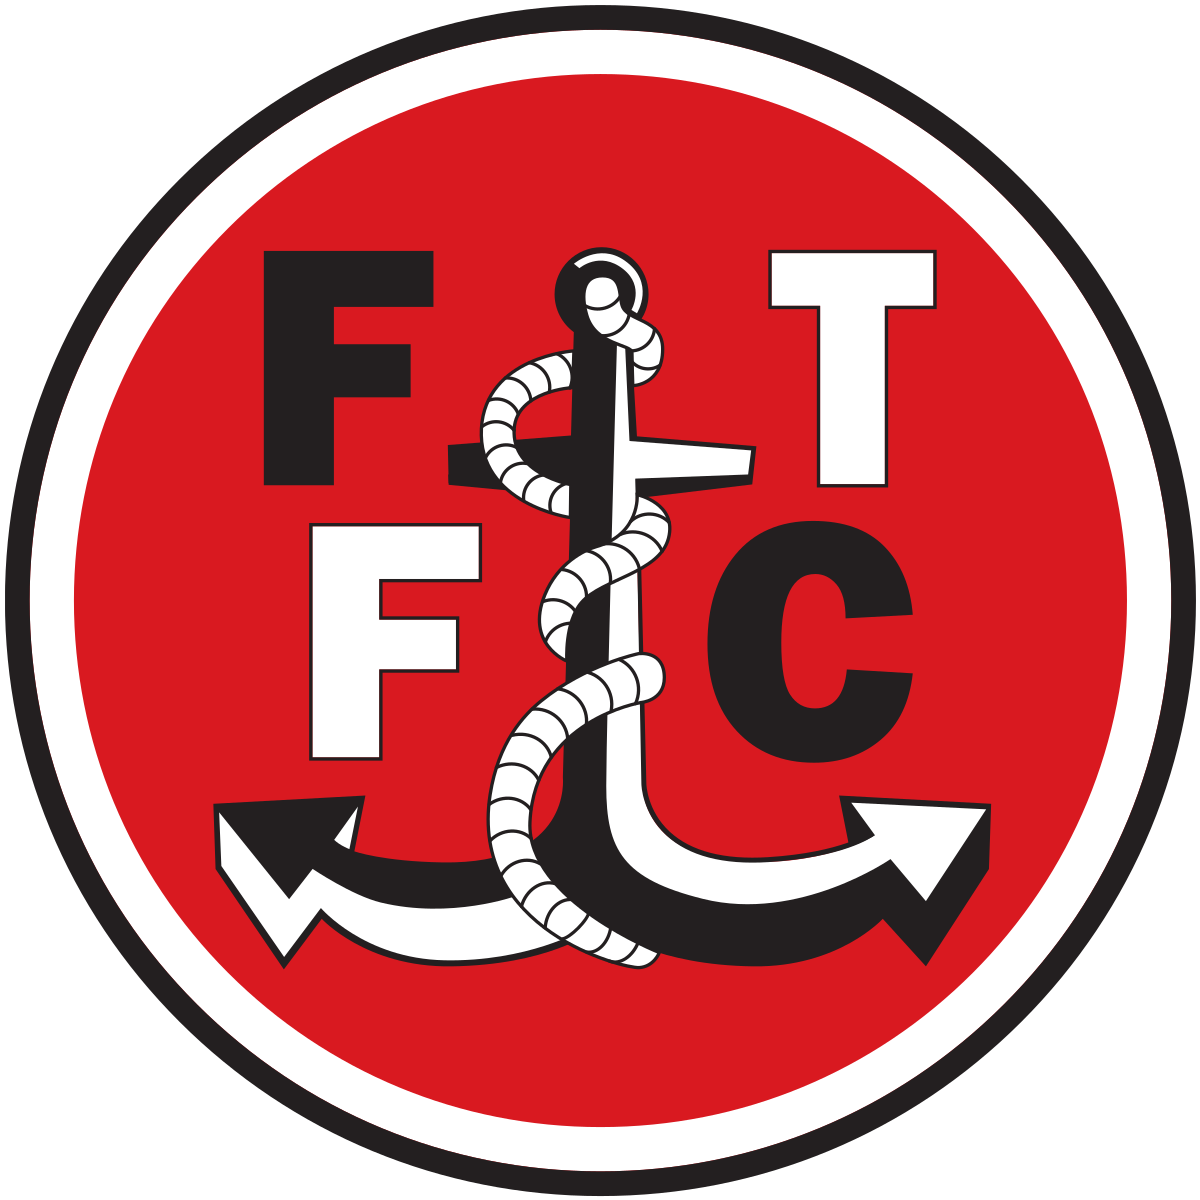 Summer Events Schedule Planned for Family Fun At Fleetwood Town